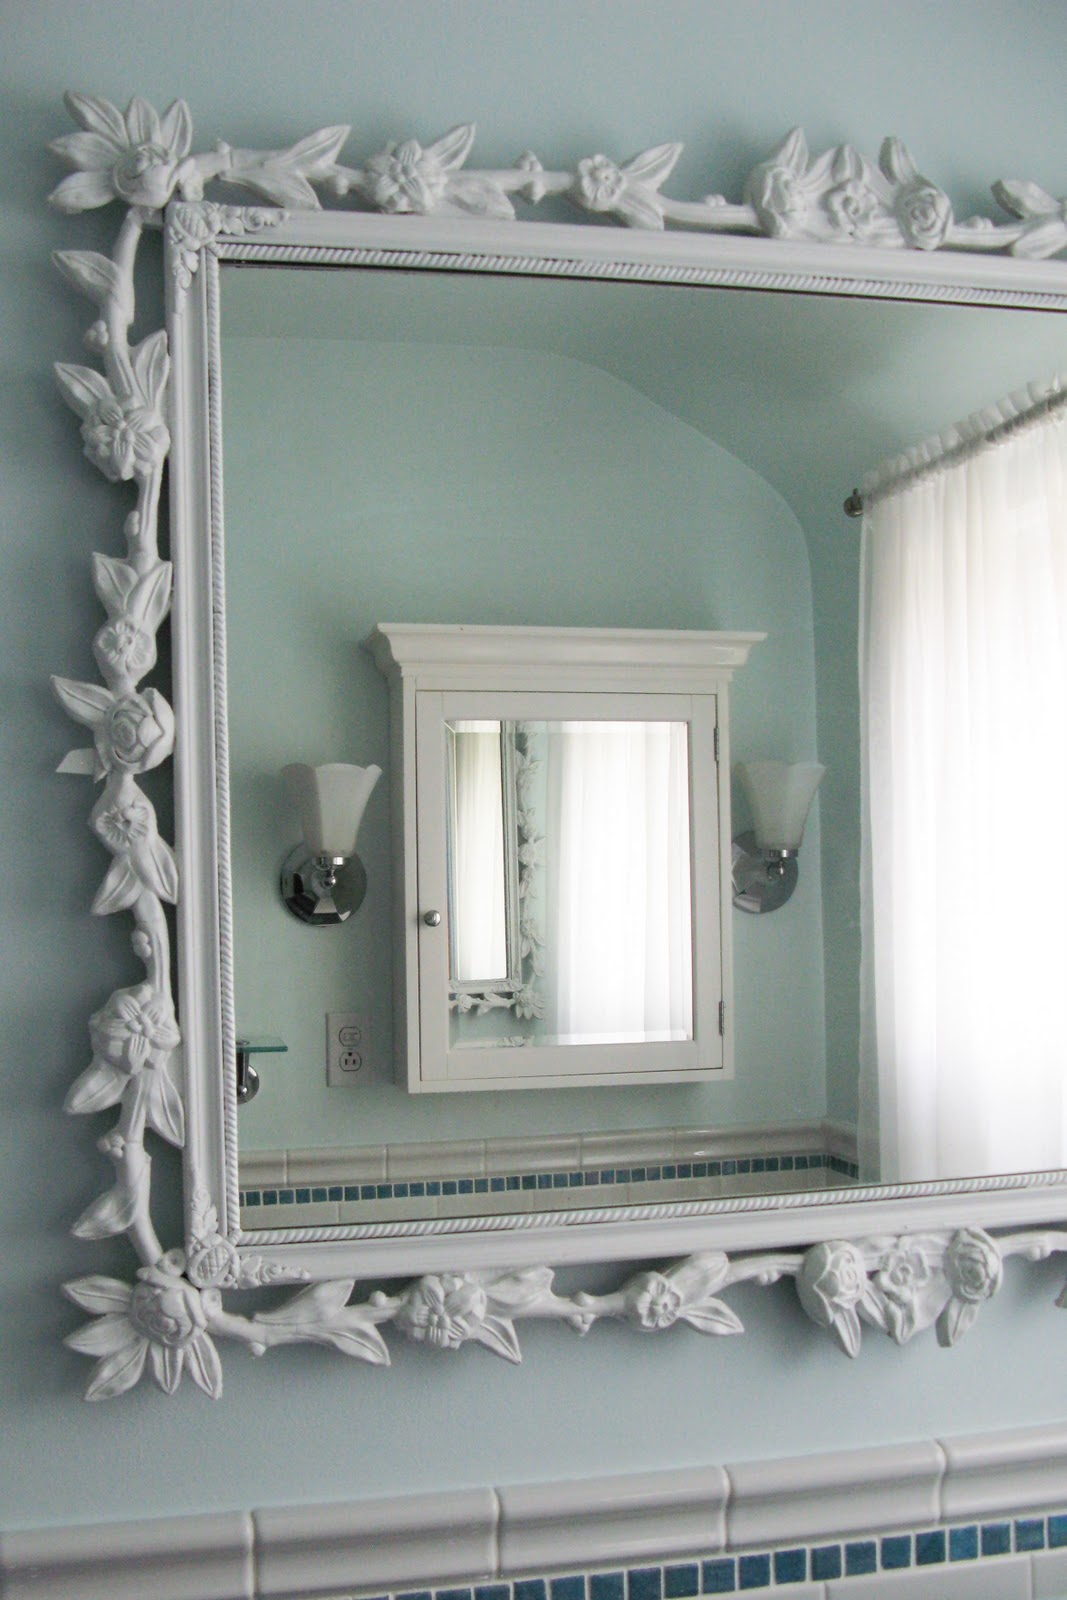 Top Large Bathroom Mirrors with Medicine Cabinet 1067 x 1600 · 196 kB · jpeg